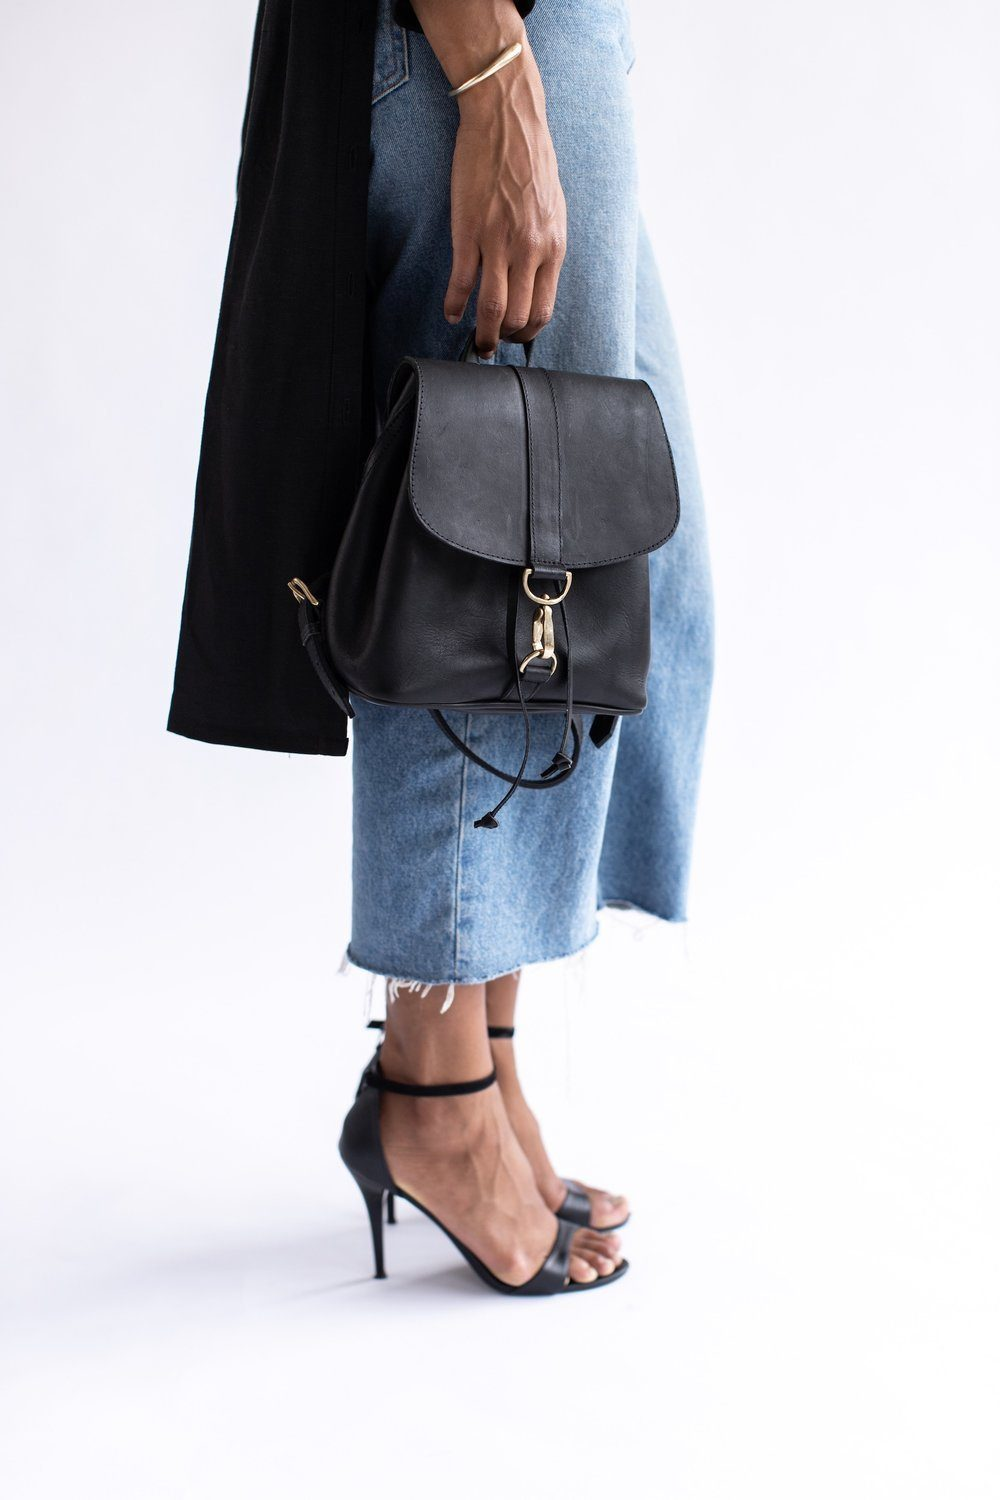 Ethical backpack from Abby Alley